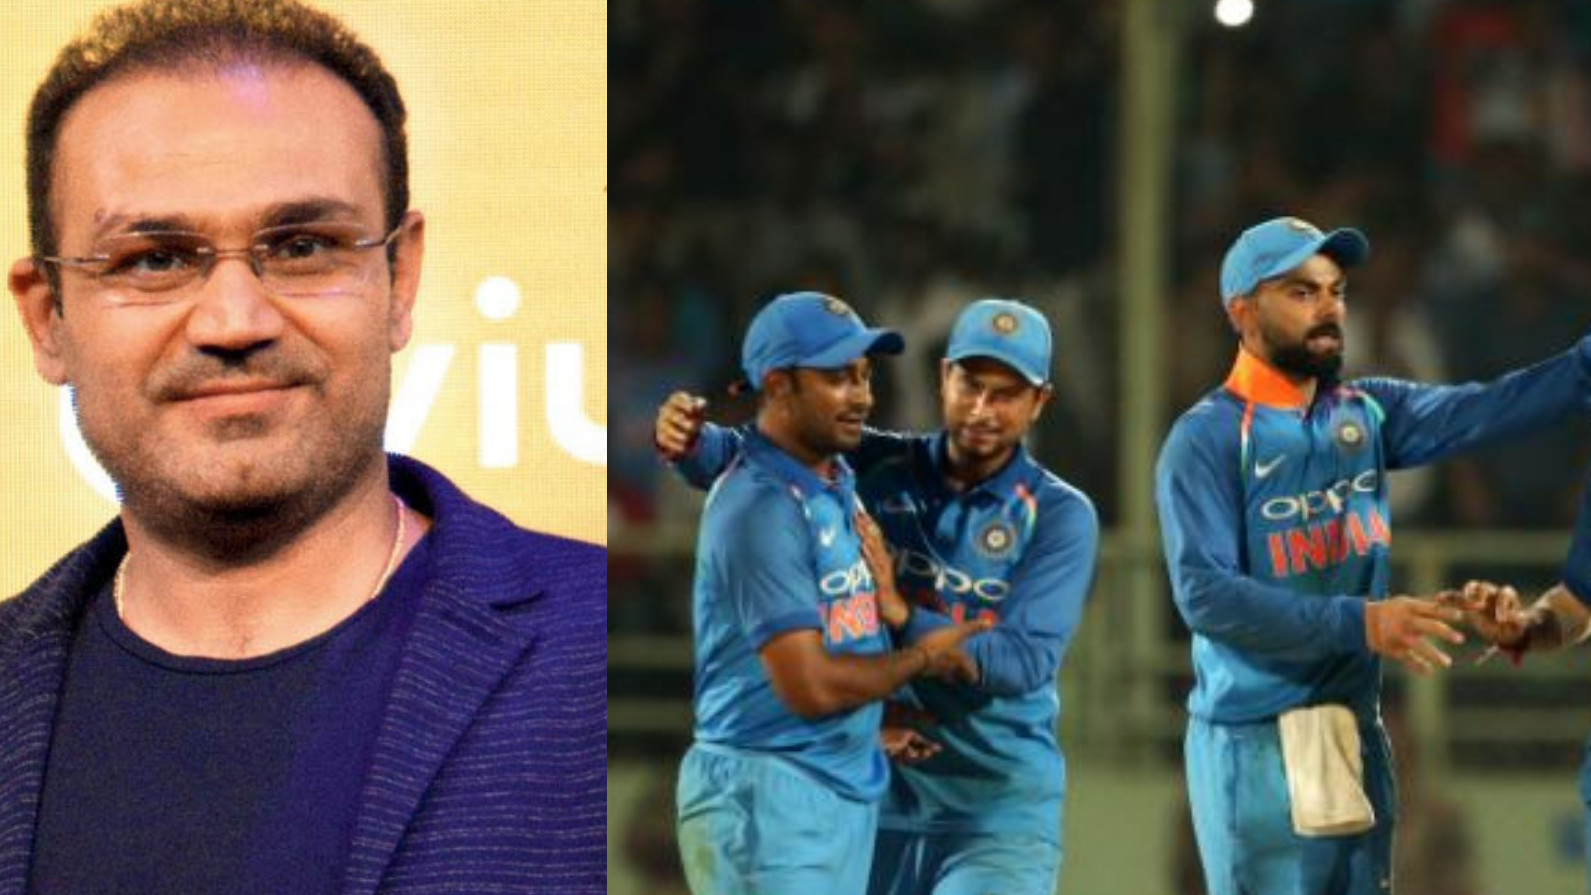 IND v WI 2018: Virender Sehwag hopes India learns from Pune defeat; hopes issues will be resolved